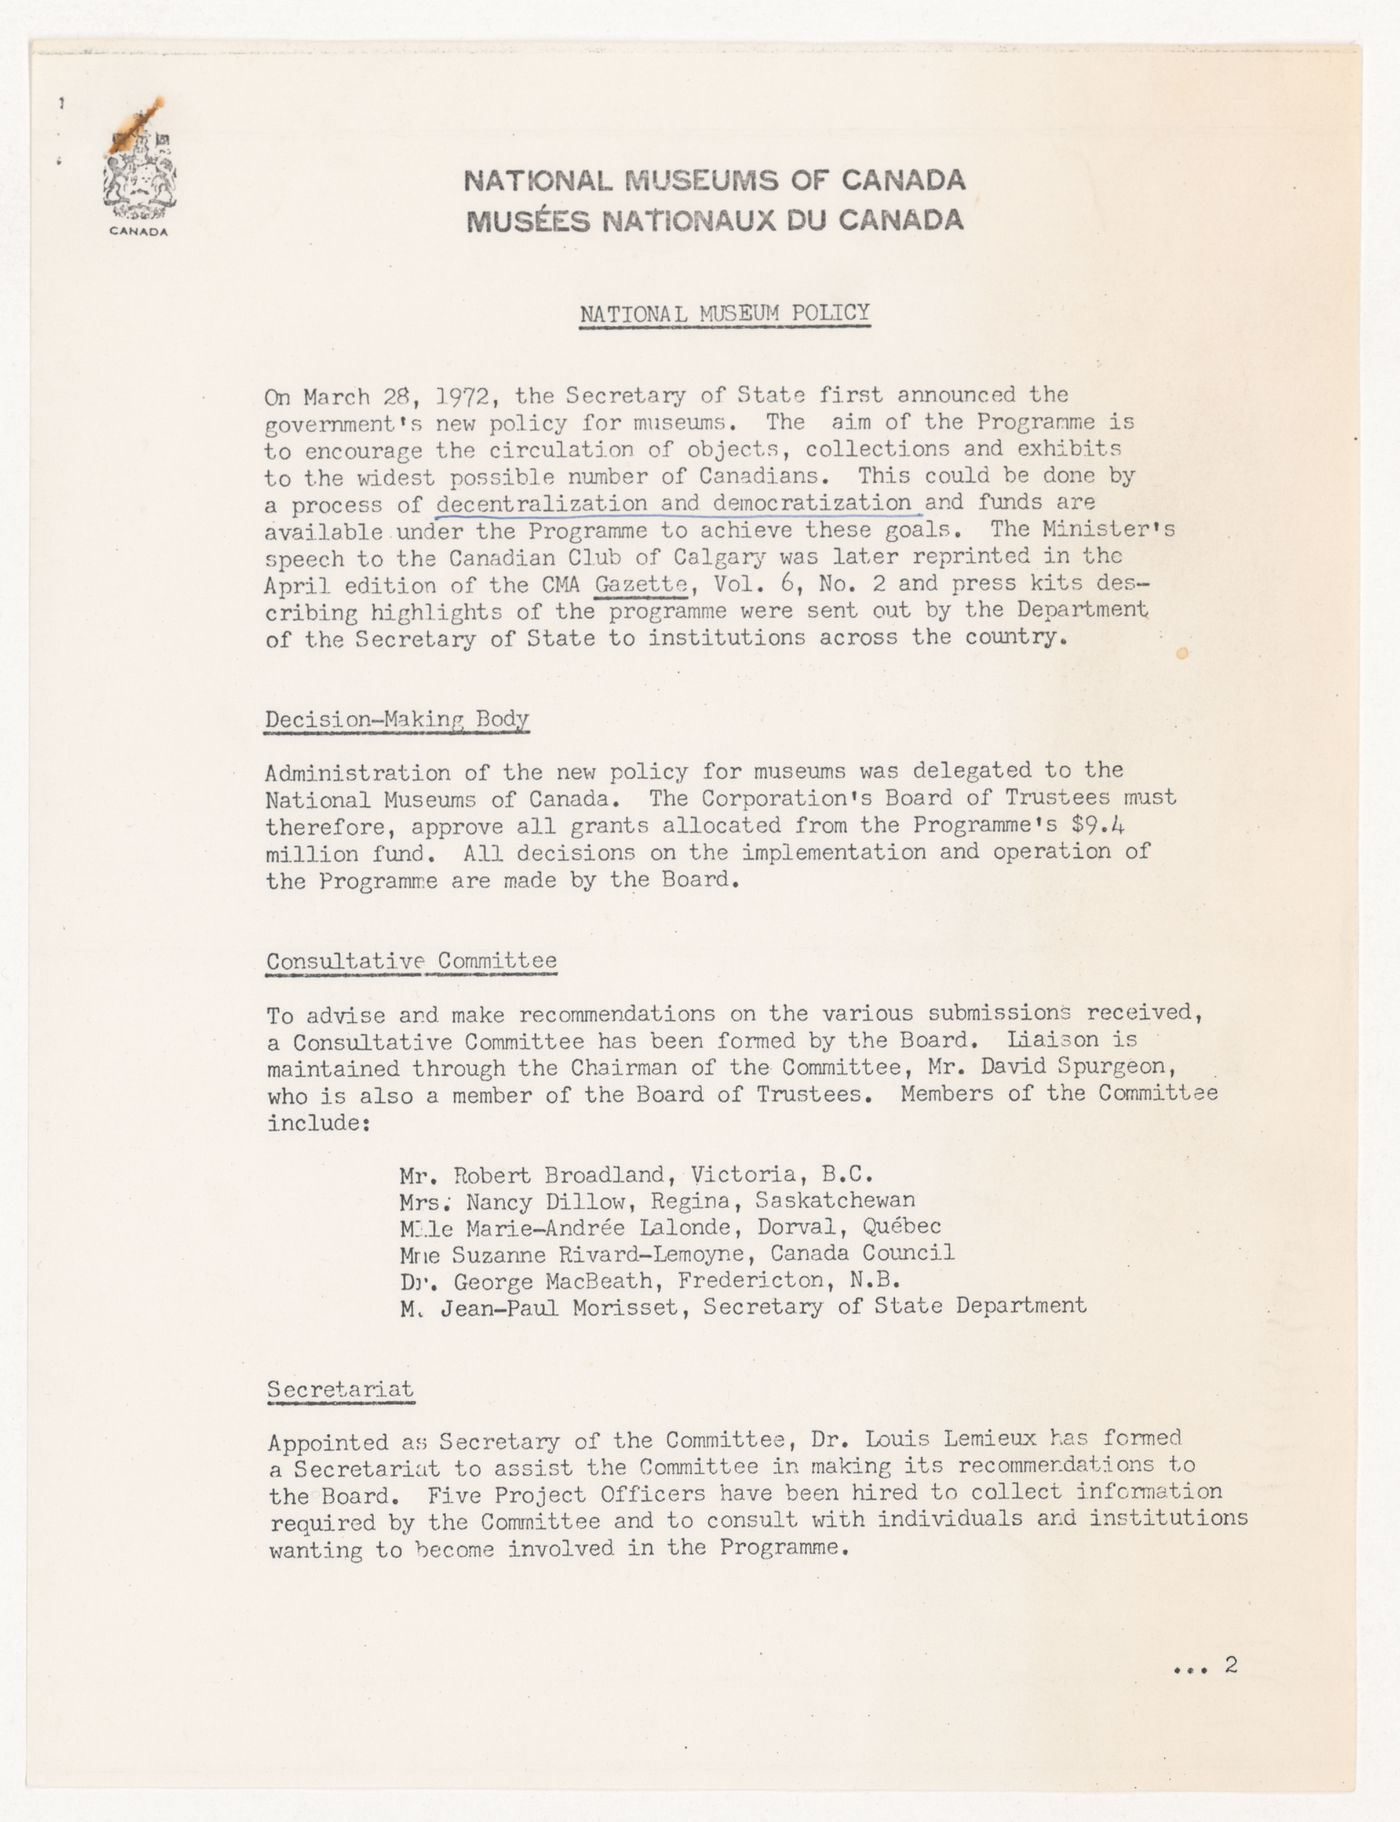 Policy statement by National Museums of Canada (from the project file Universal Modular Museum)